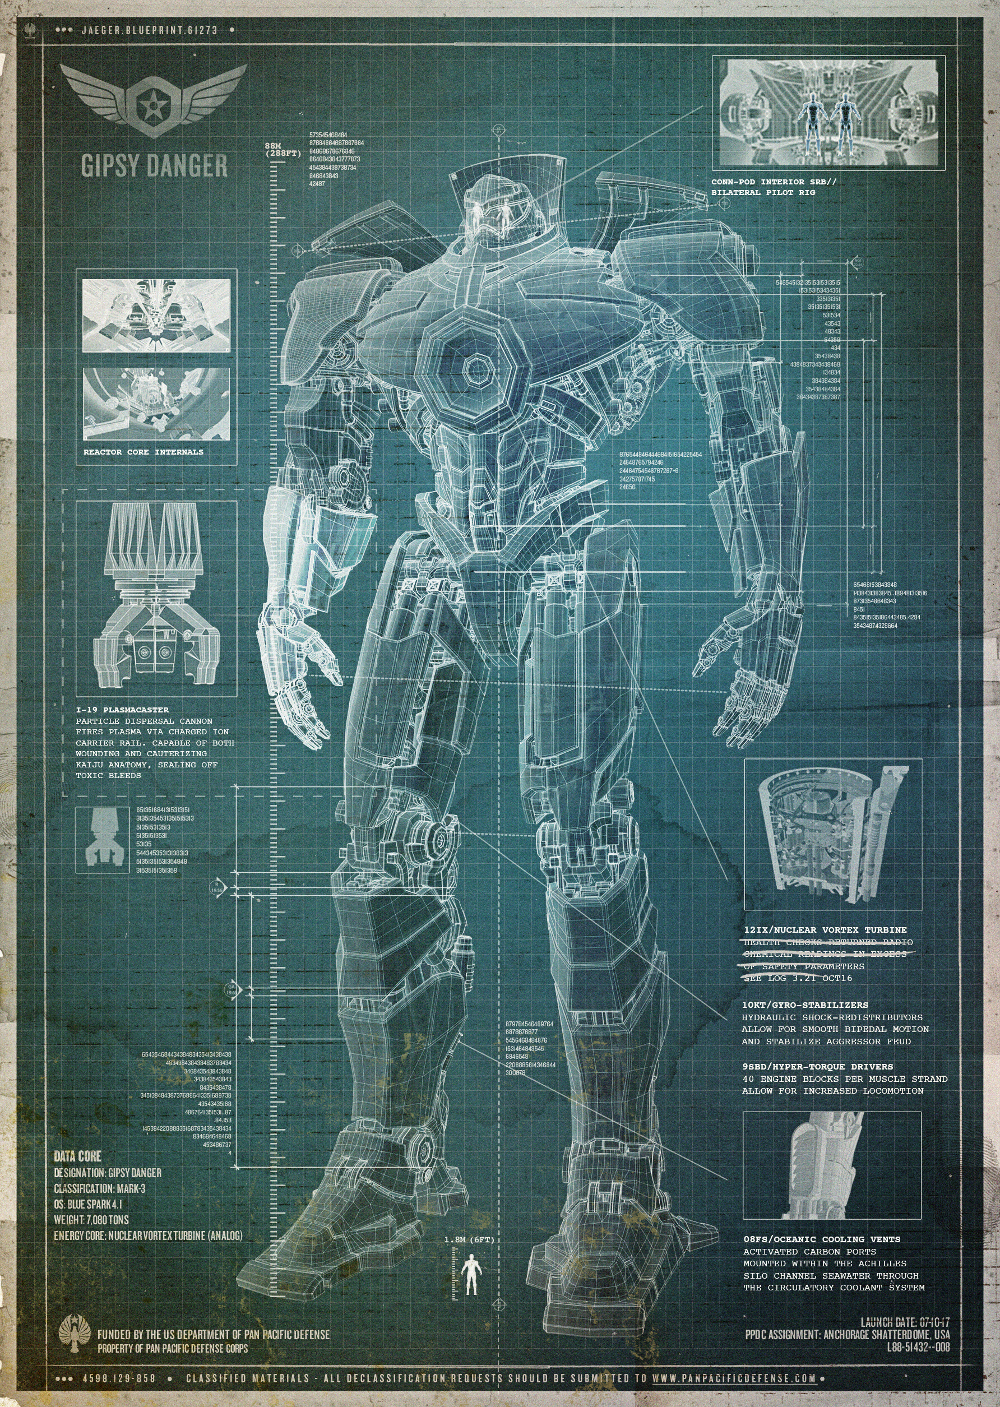 Gipsy danger jaeger pacific rim wiki fandom powered by wikia gipsy danger jaeger malvernweather